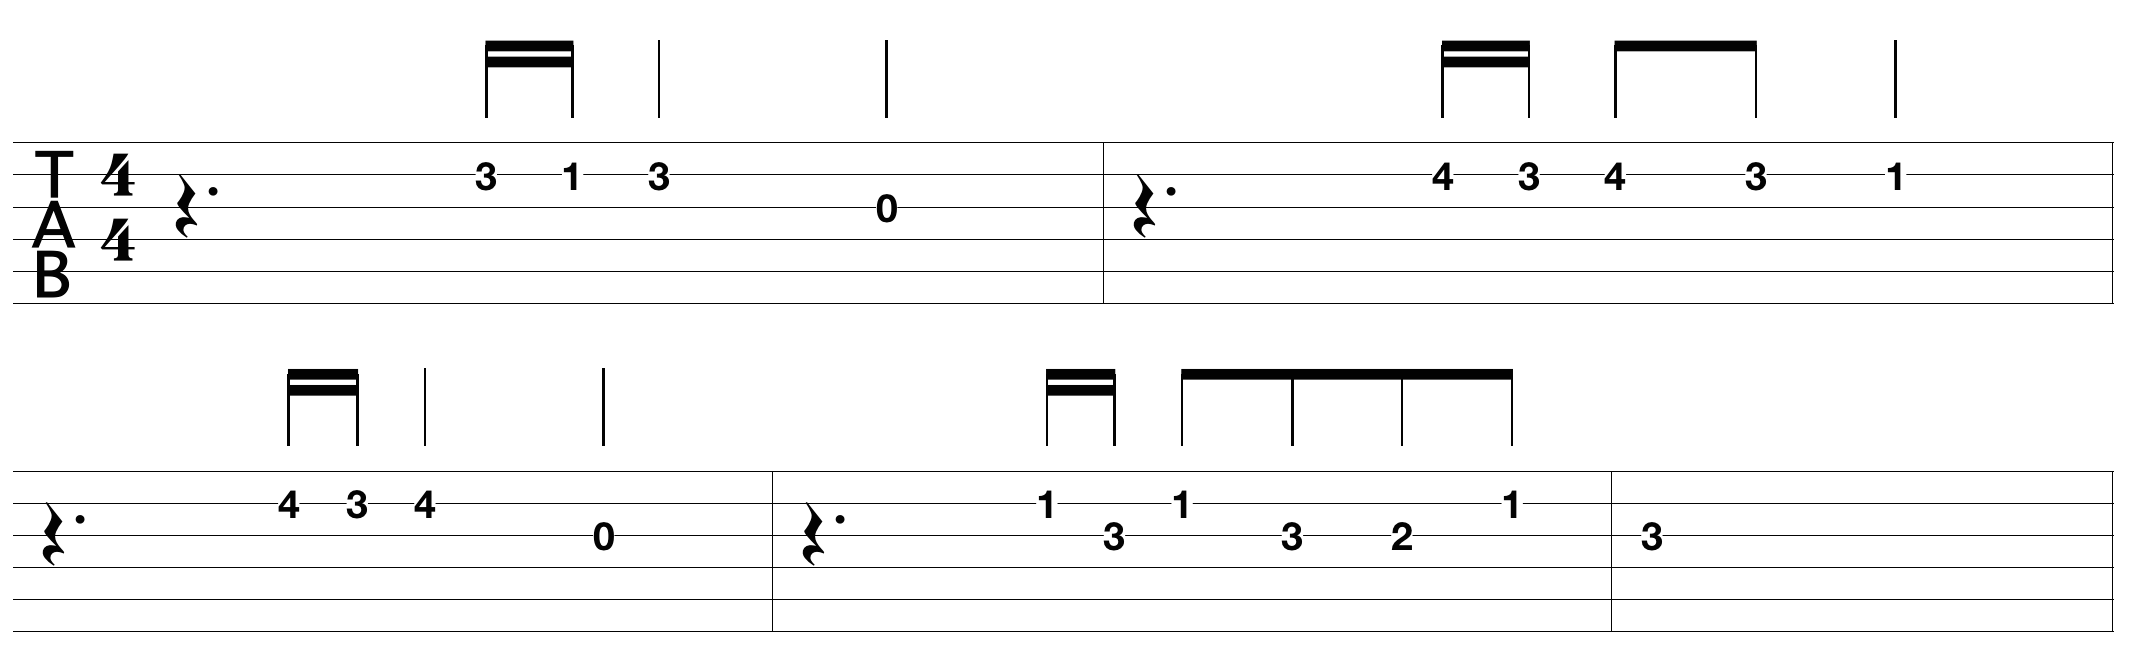 easy-guitar-tabs-for-kids_1.png